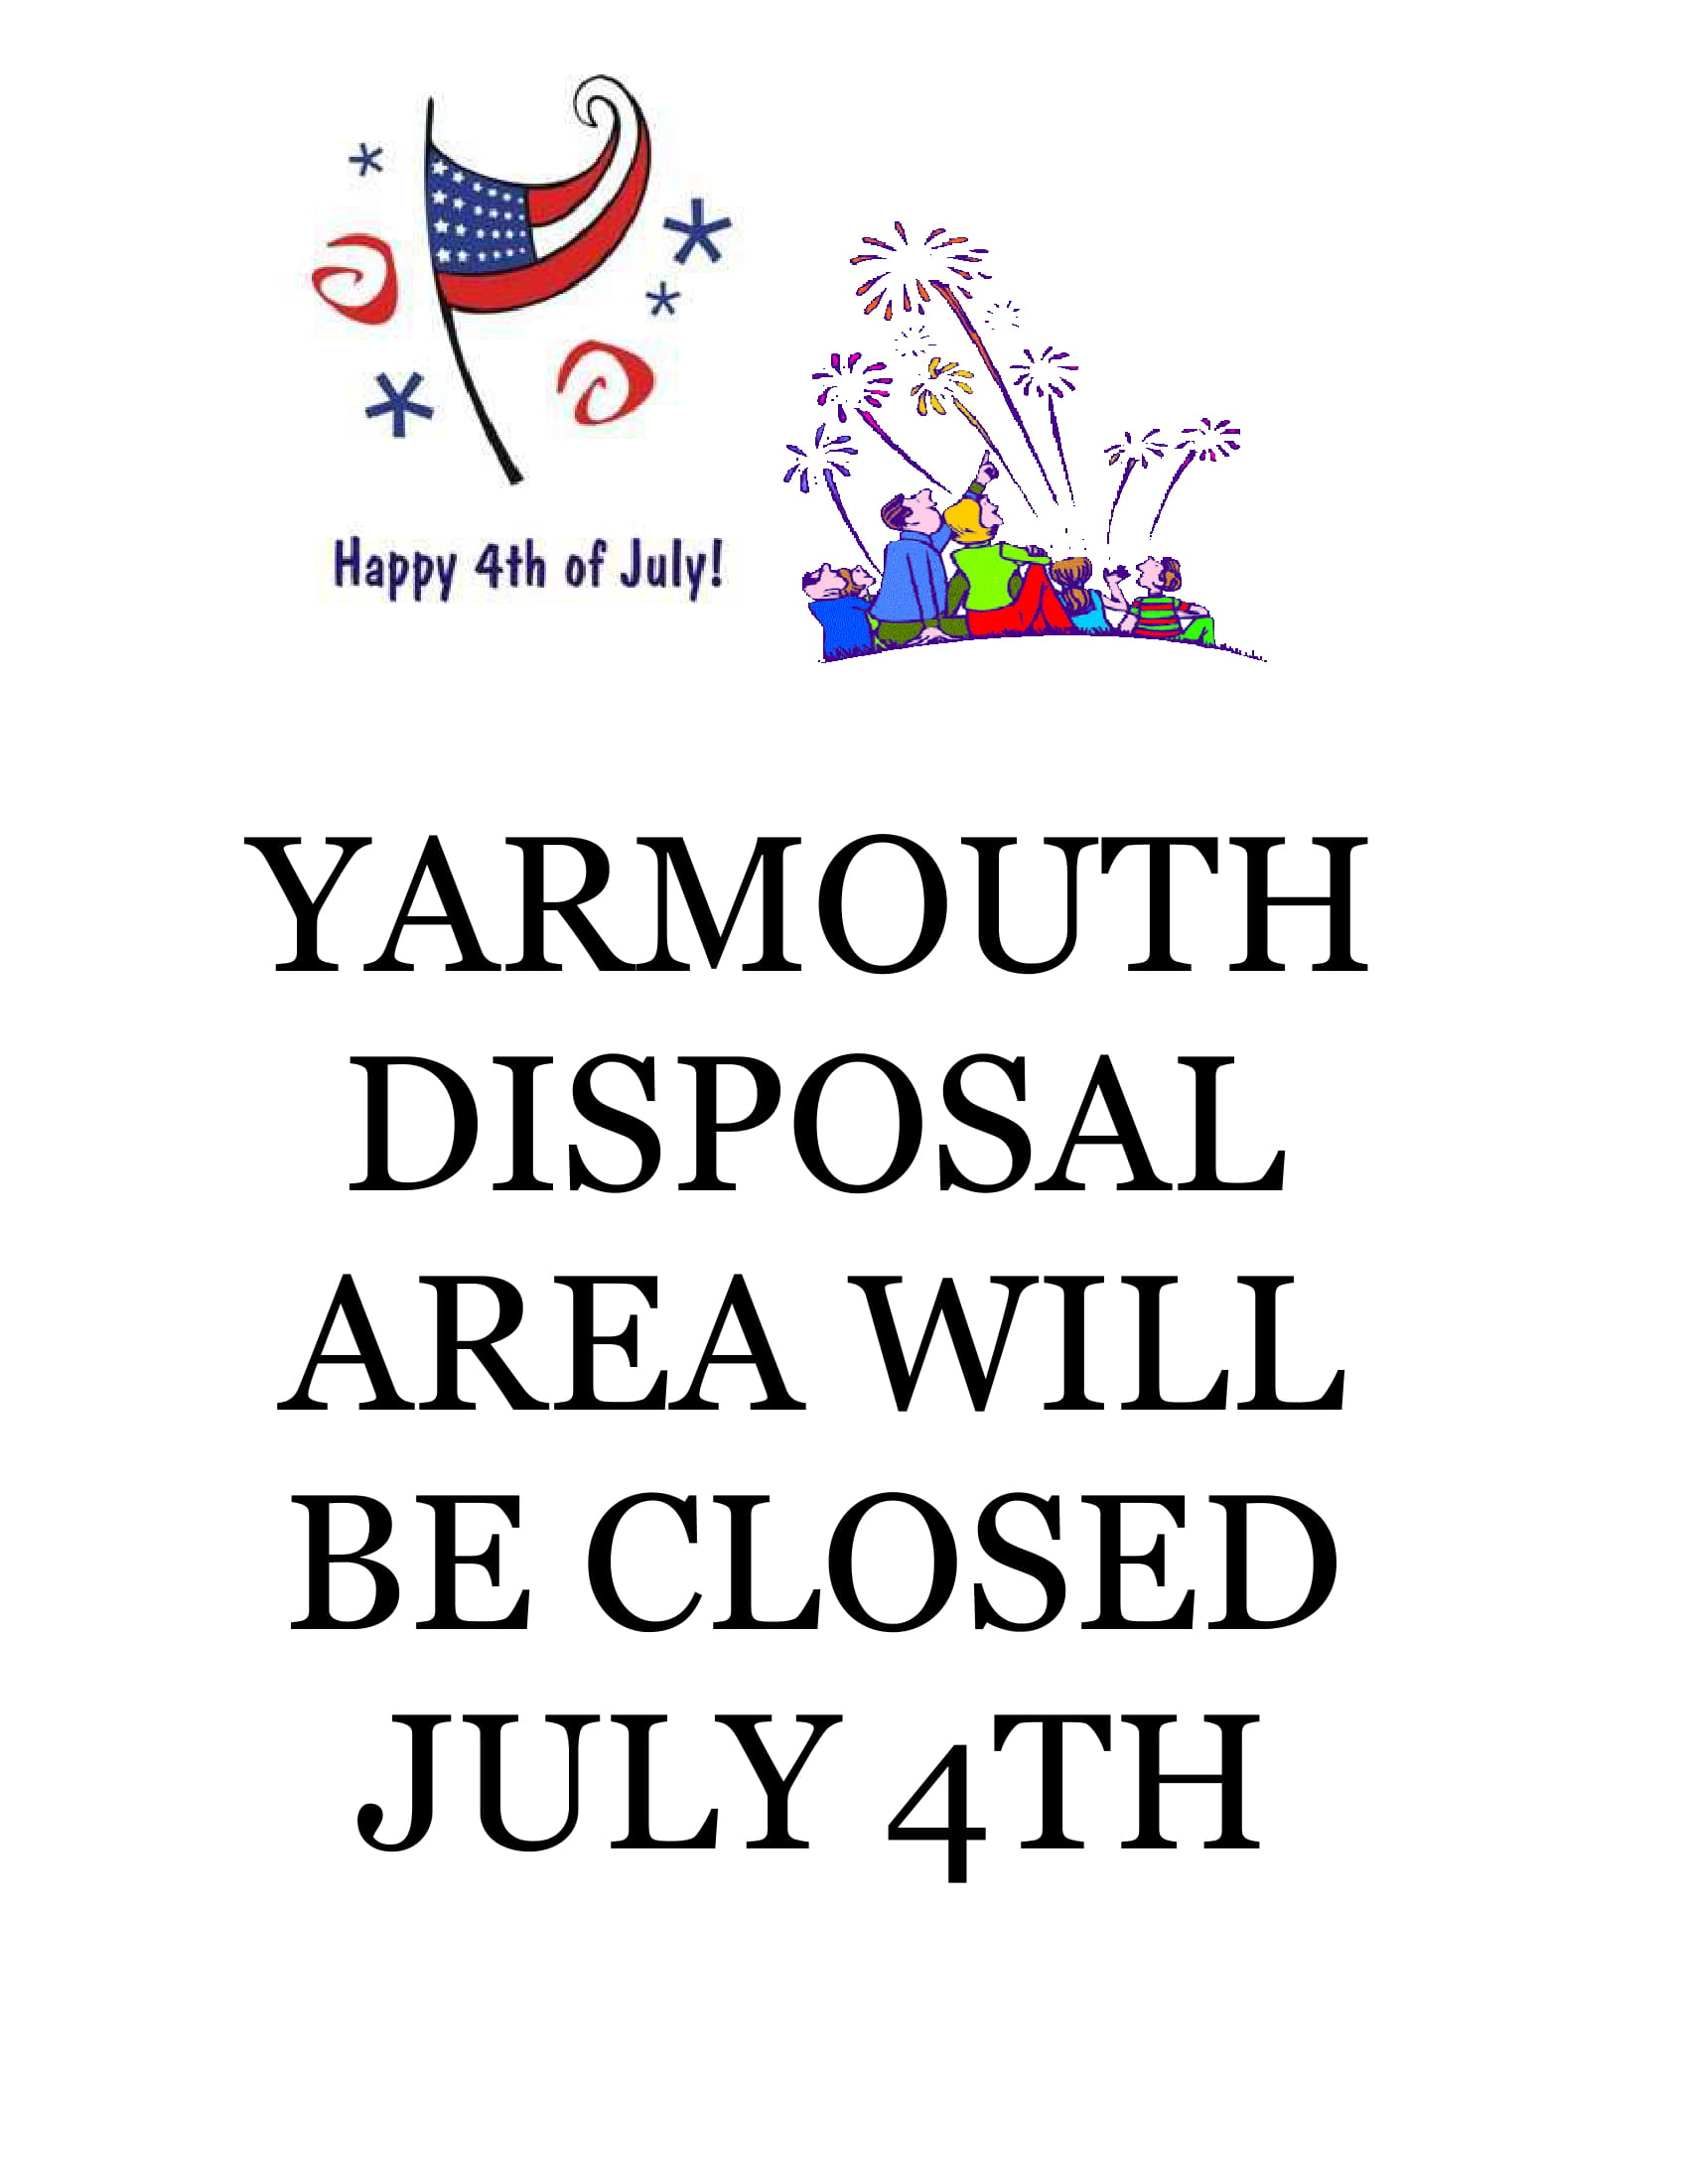 JULY 4TH CLOSED SIGN